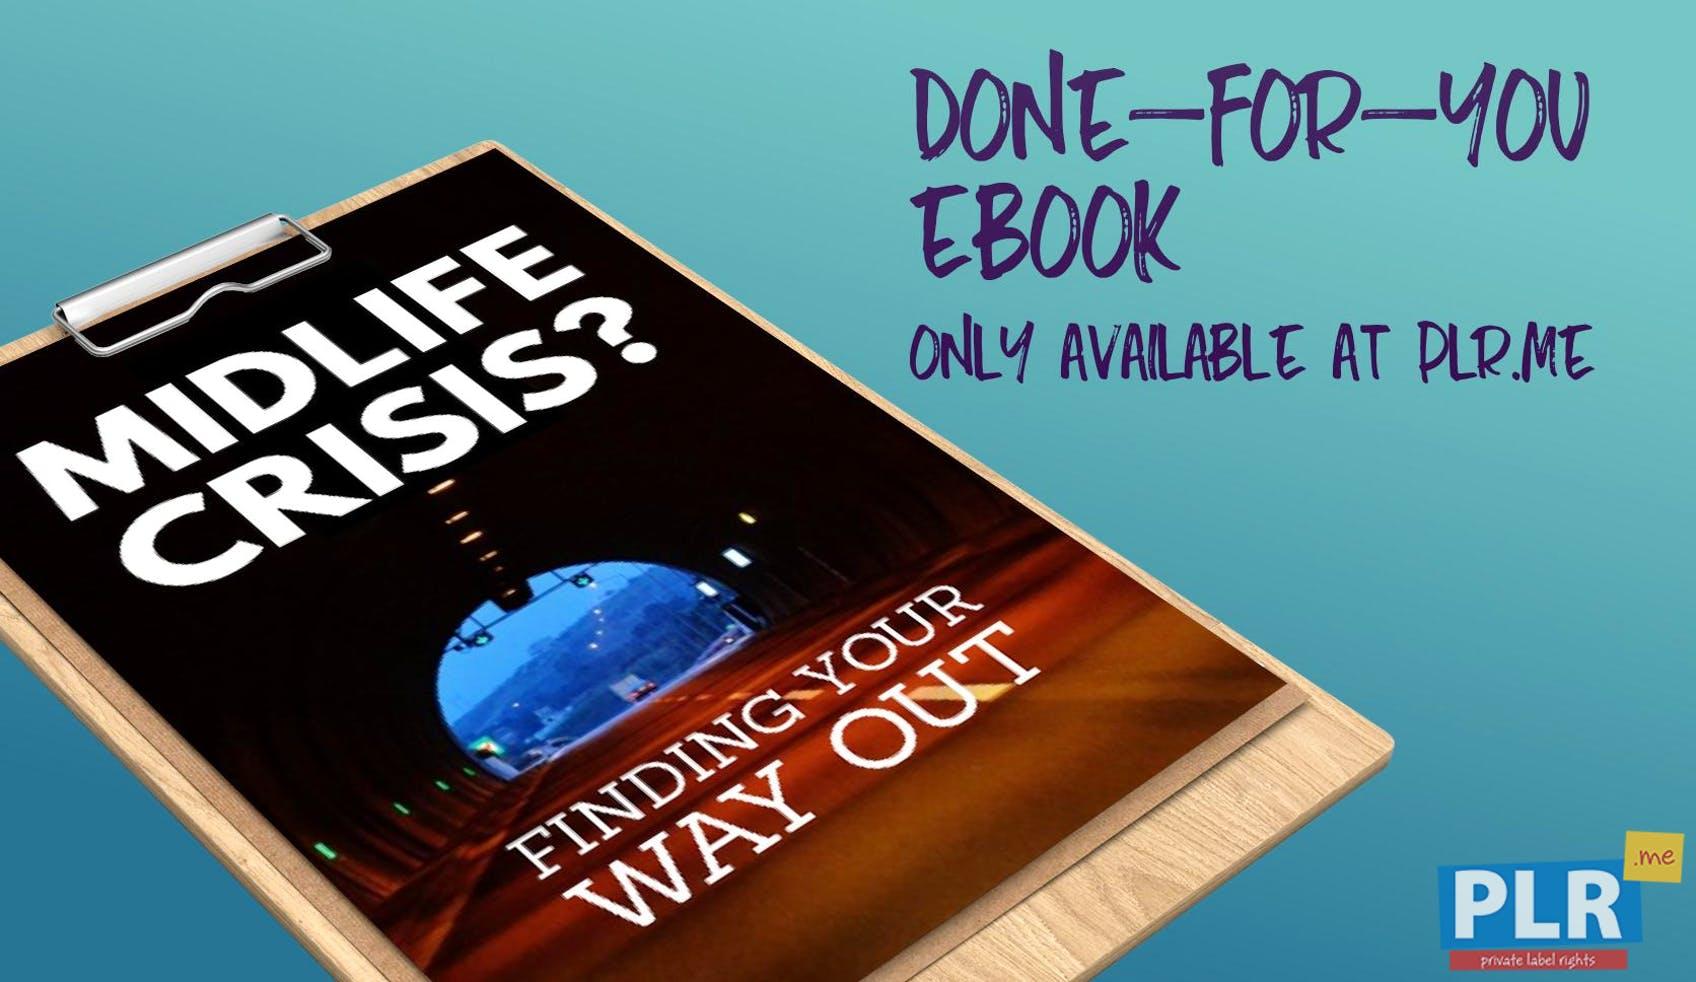 Midlife Crisis Finding Your Way Out